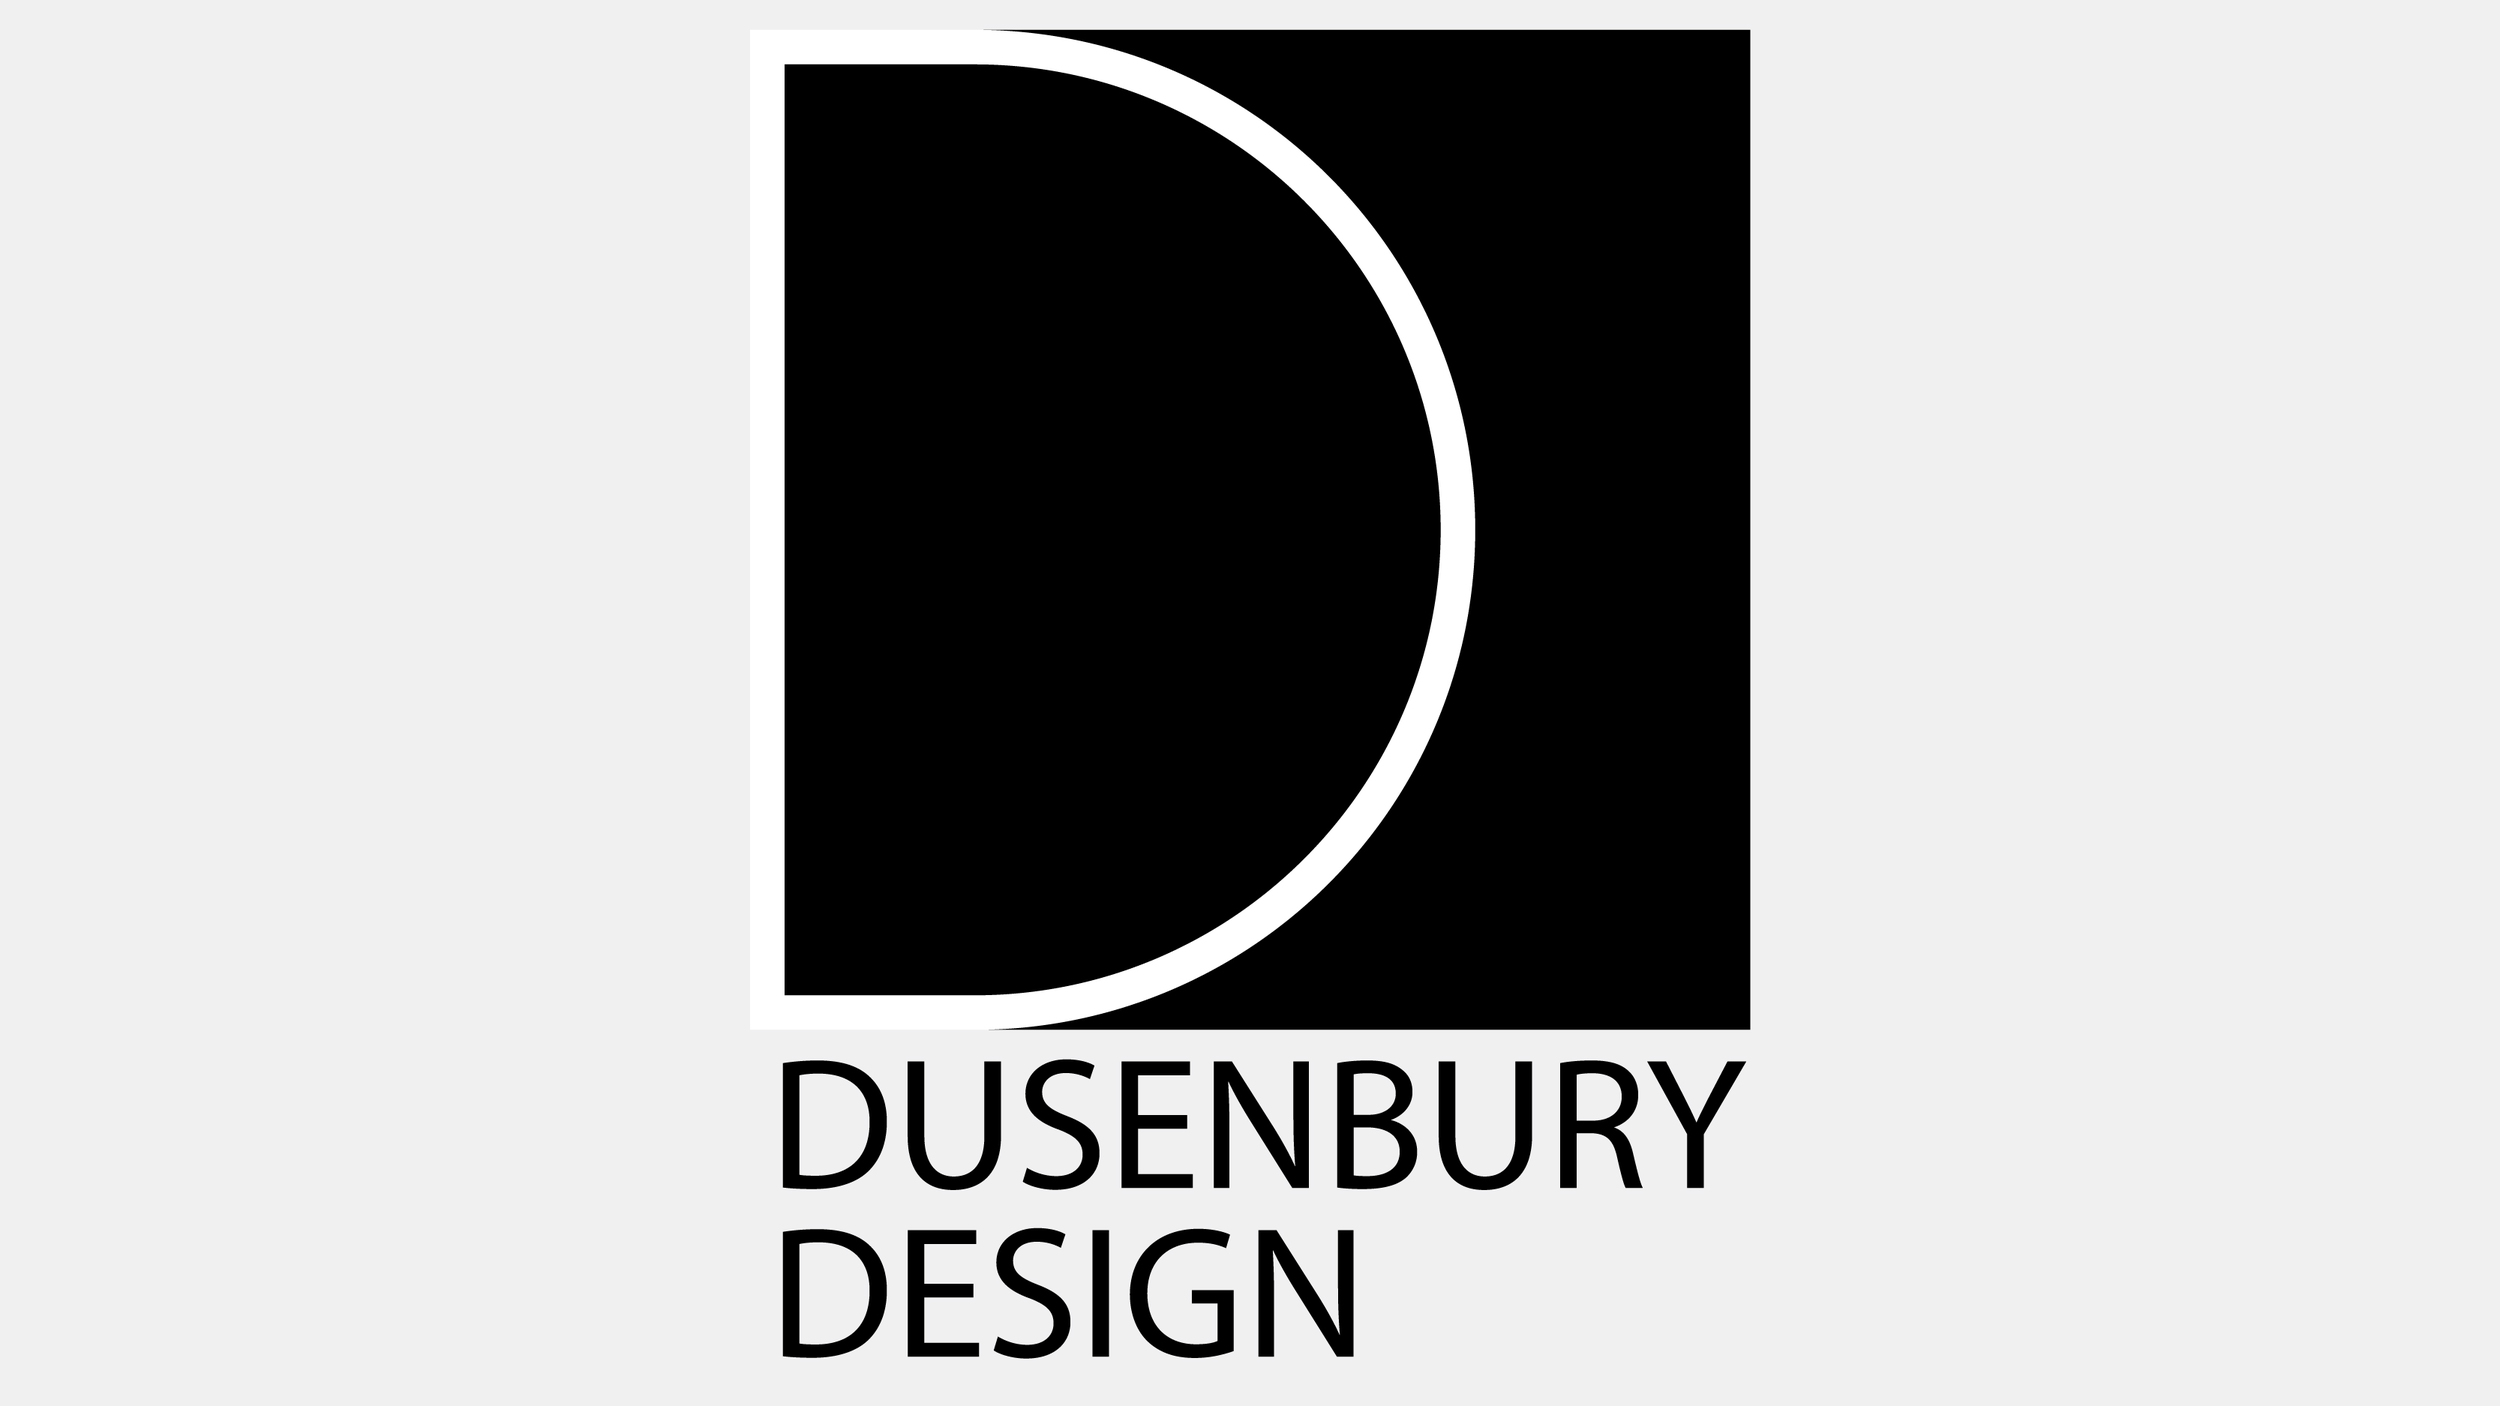 Dusenbury Design